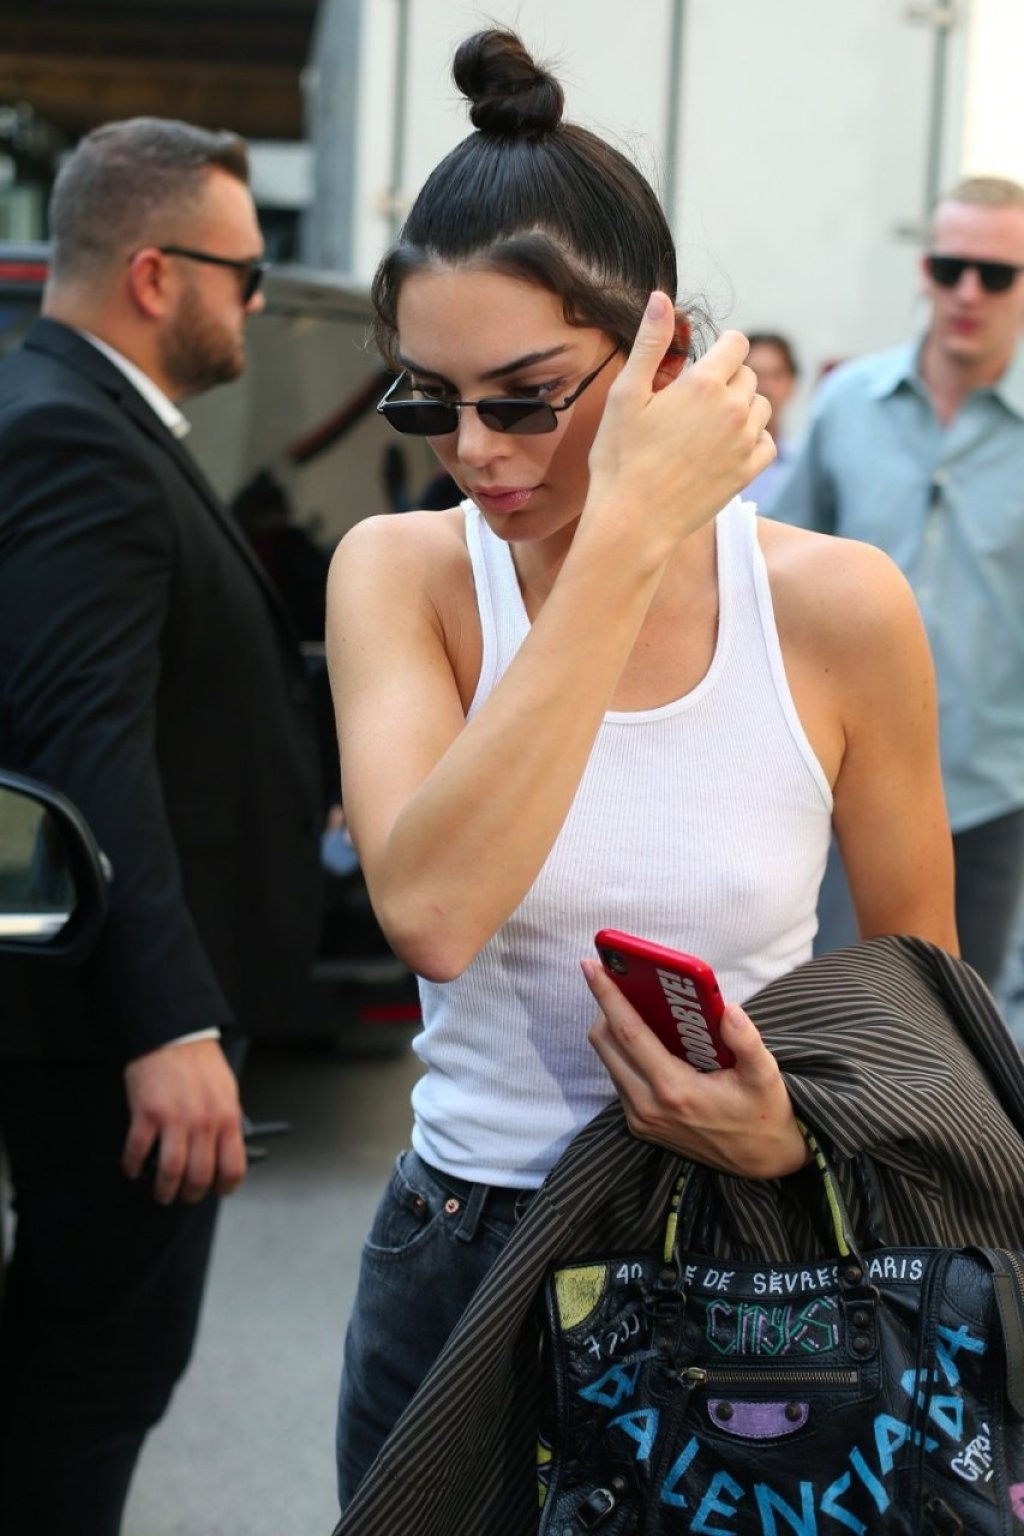 Kendall Jenner Braless (21 New Photos)